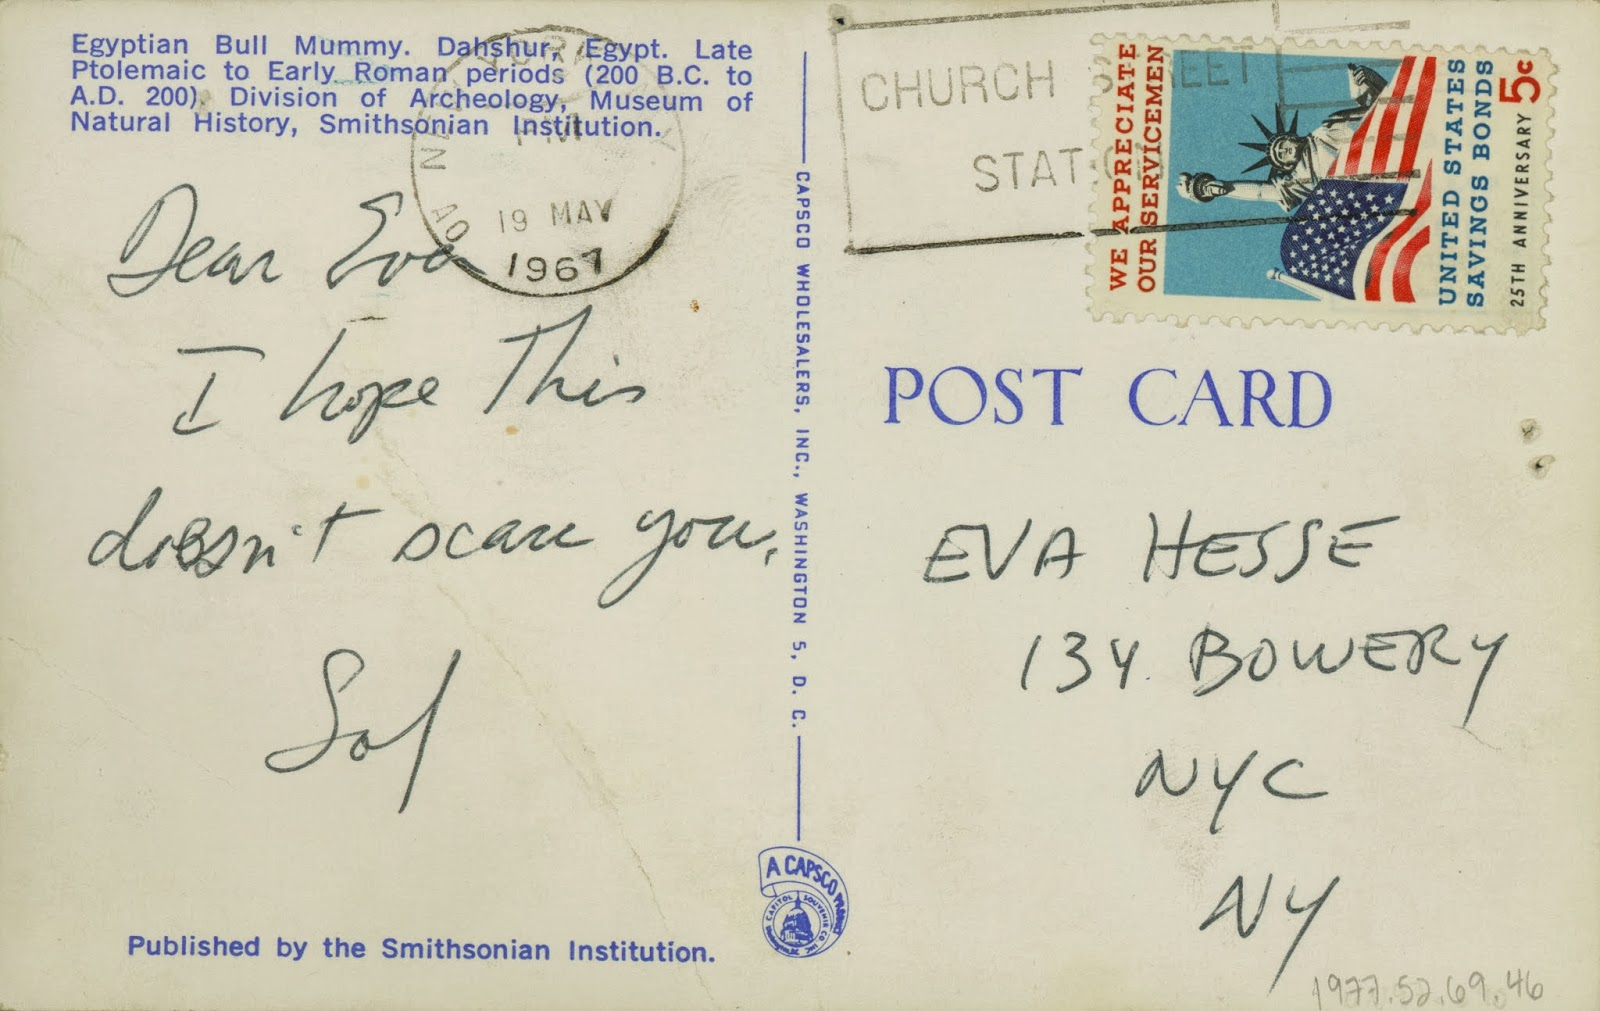 Postcard from Sol LeWitt to Eva Hesse